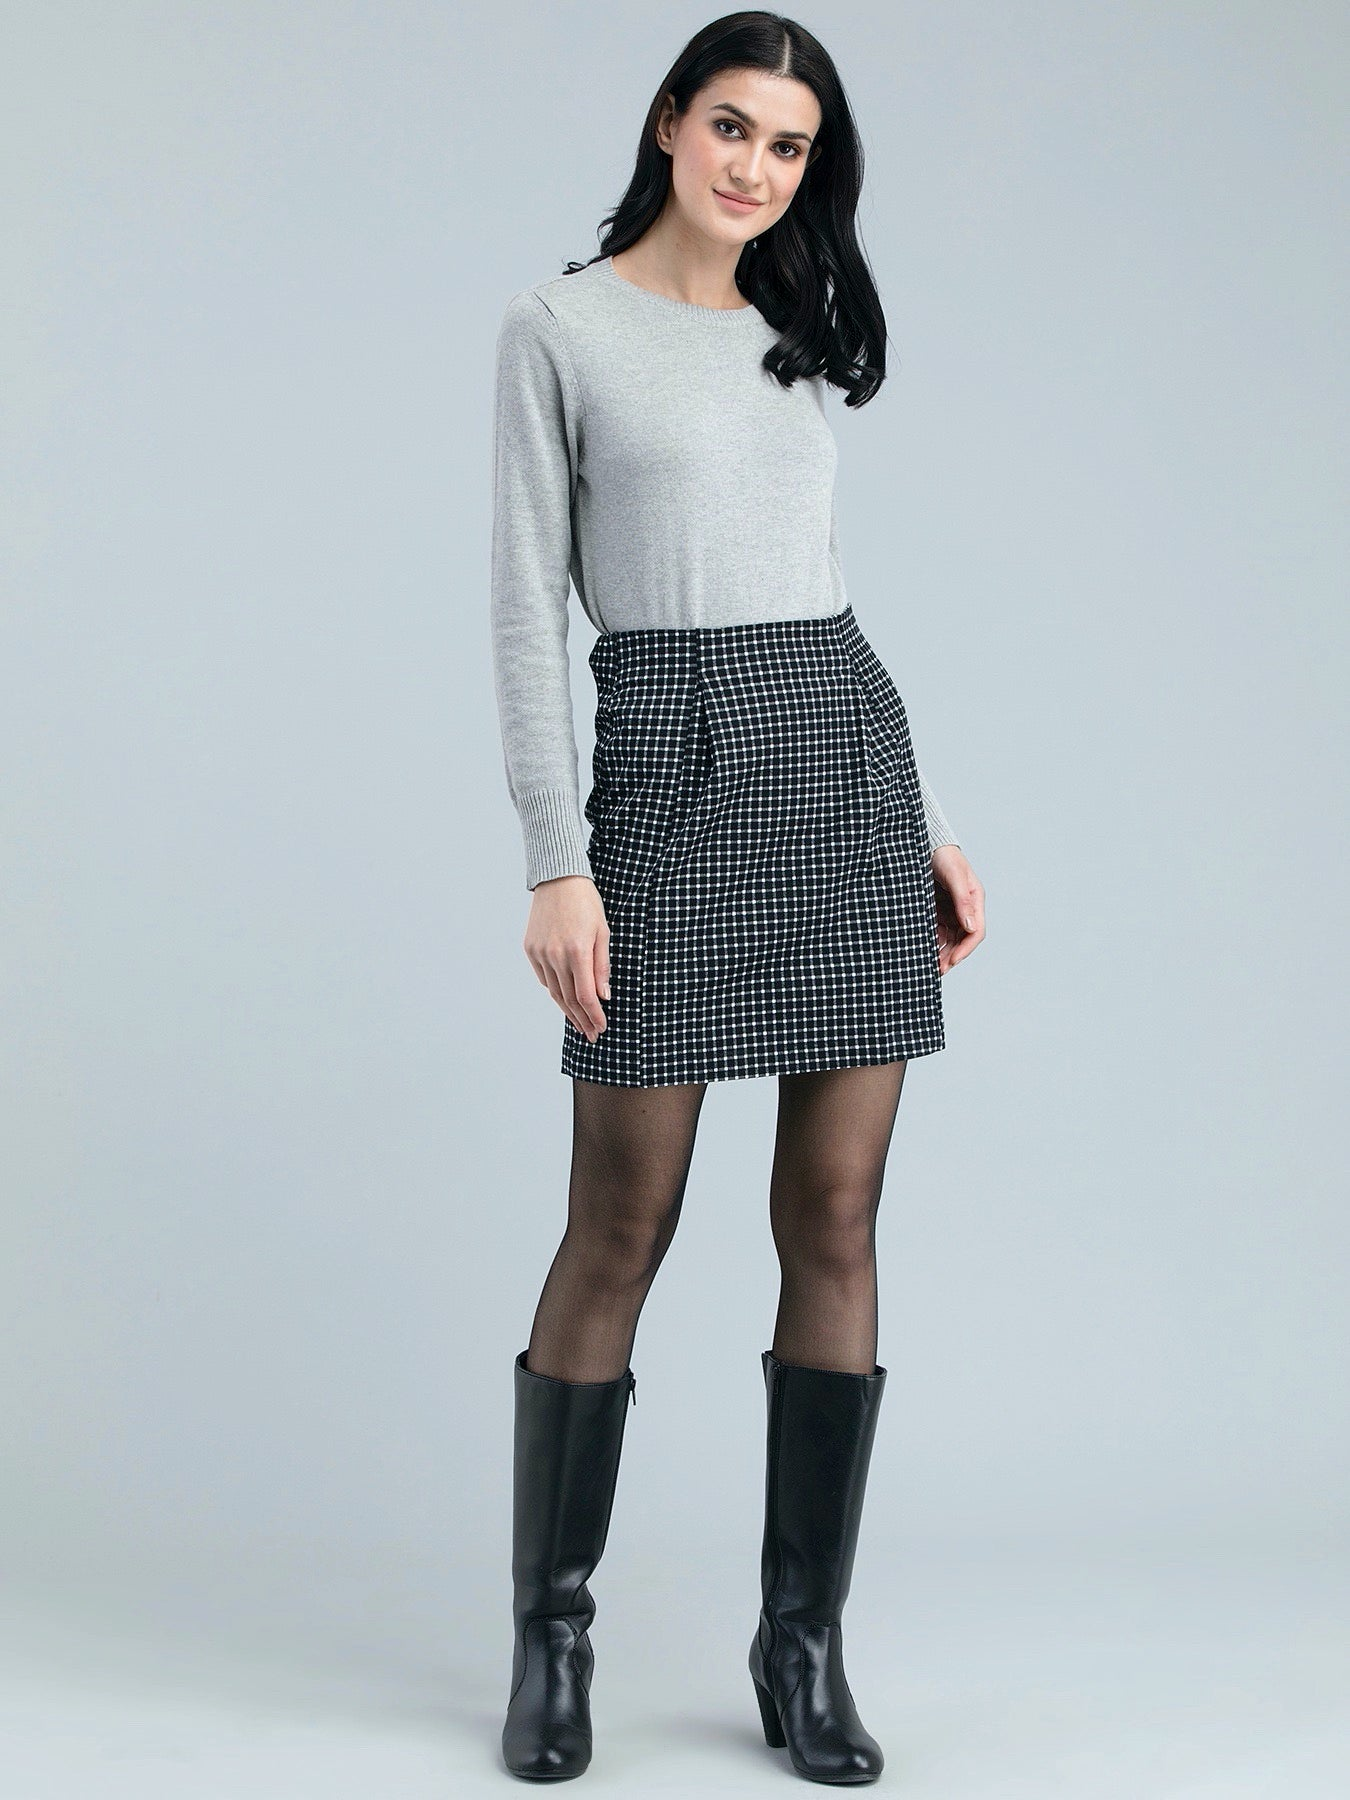 Cotton Twill Check Pencil Skirt - Black and White